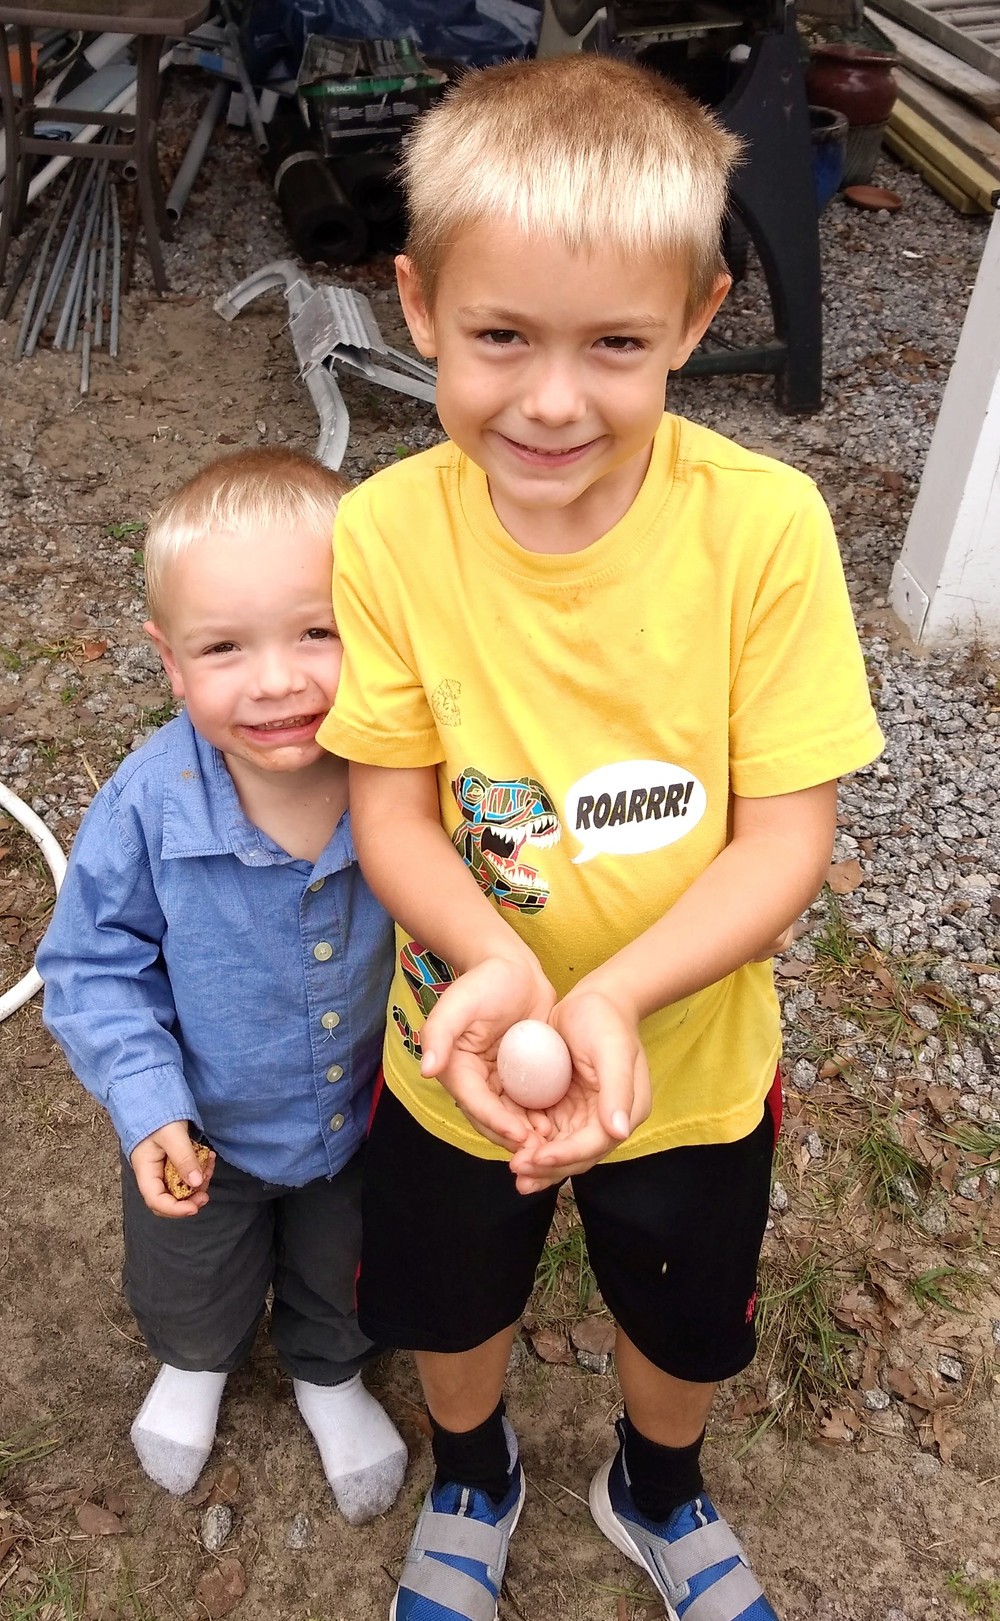 Two young boys standing next to each other; one of them is holding a small egg